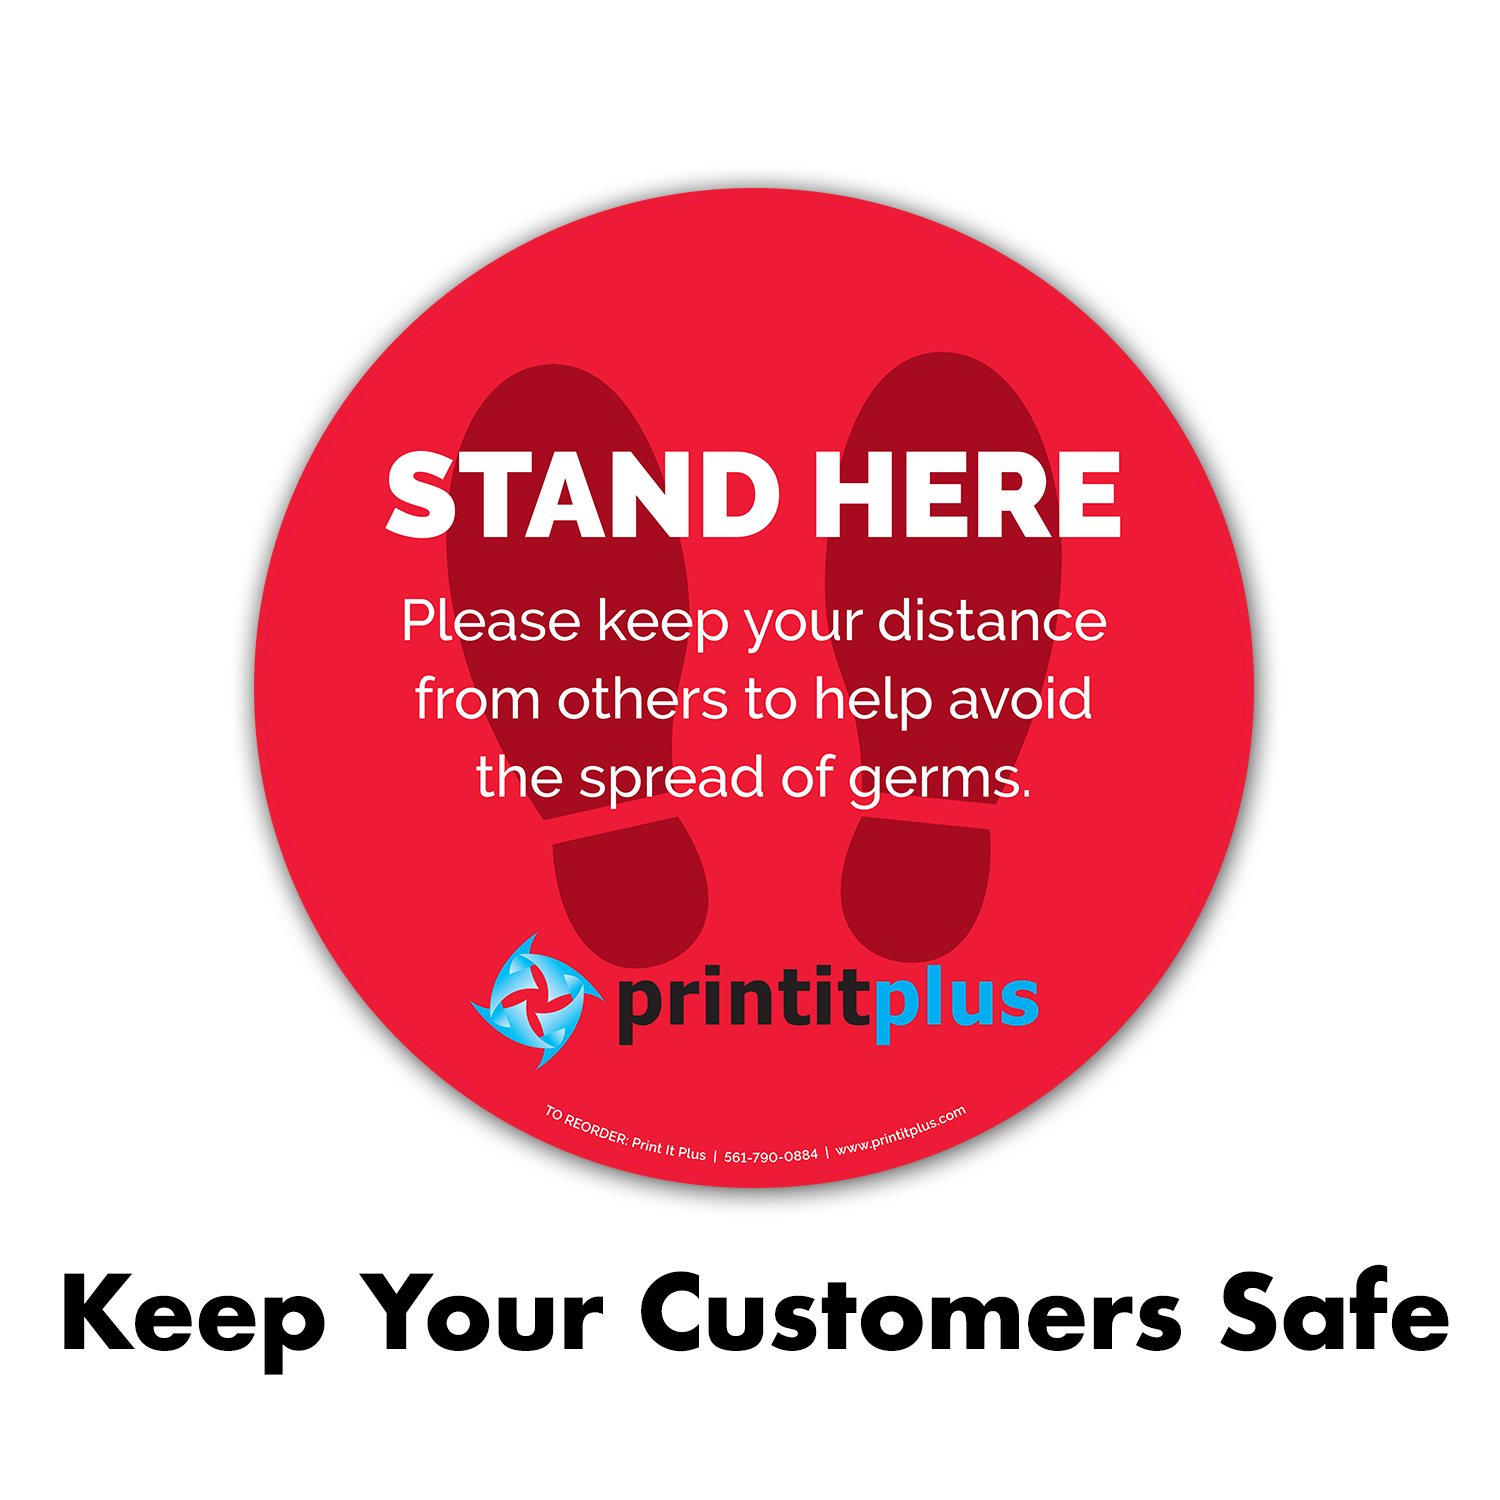 Keep Your Customers Safe